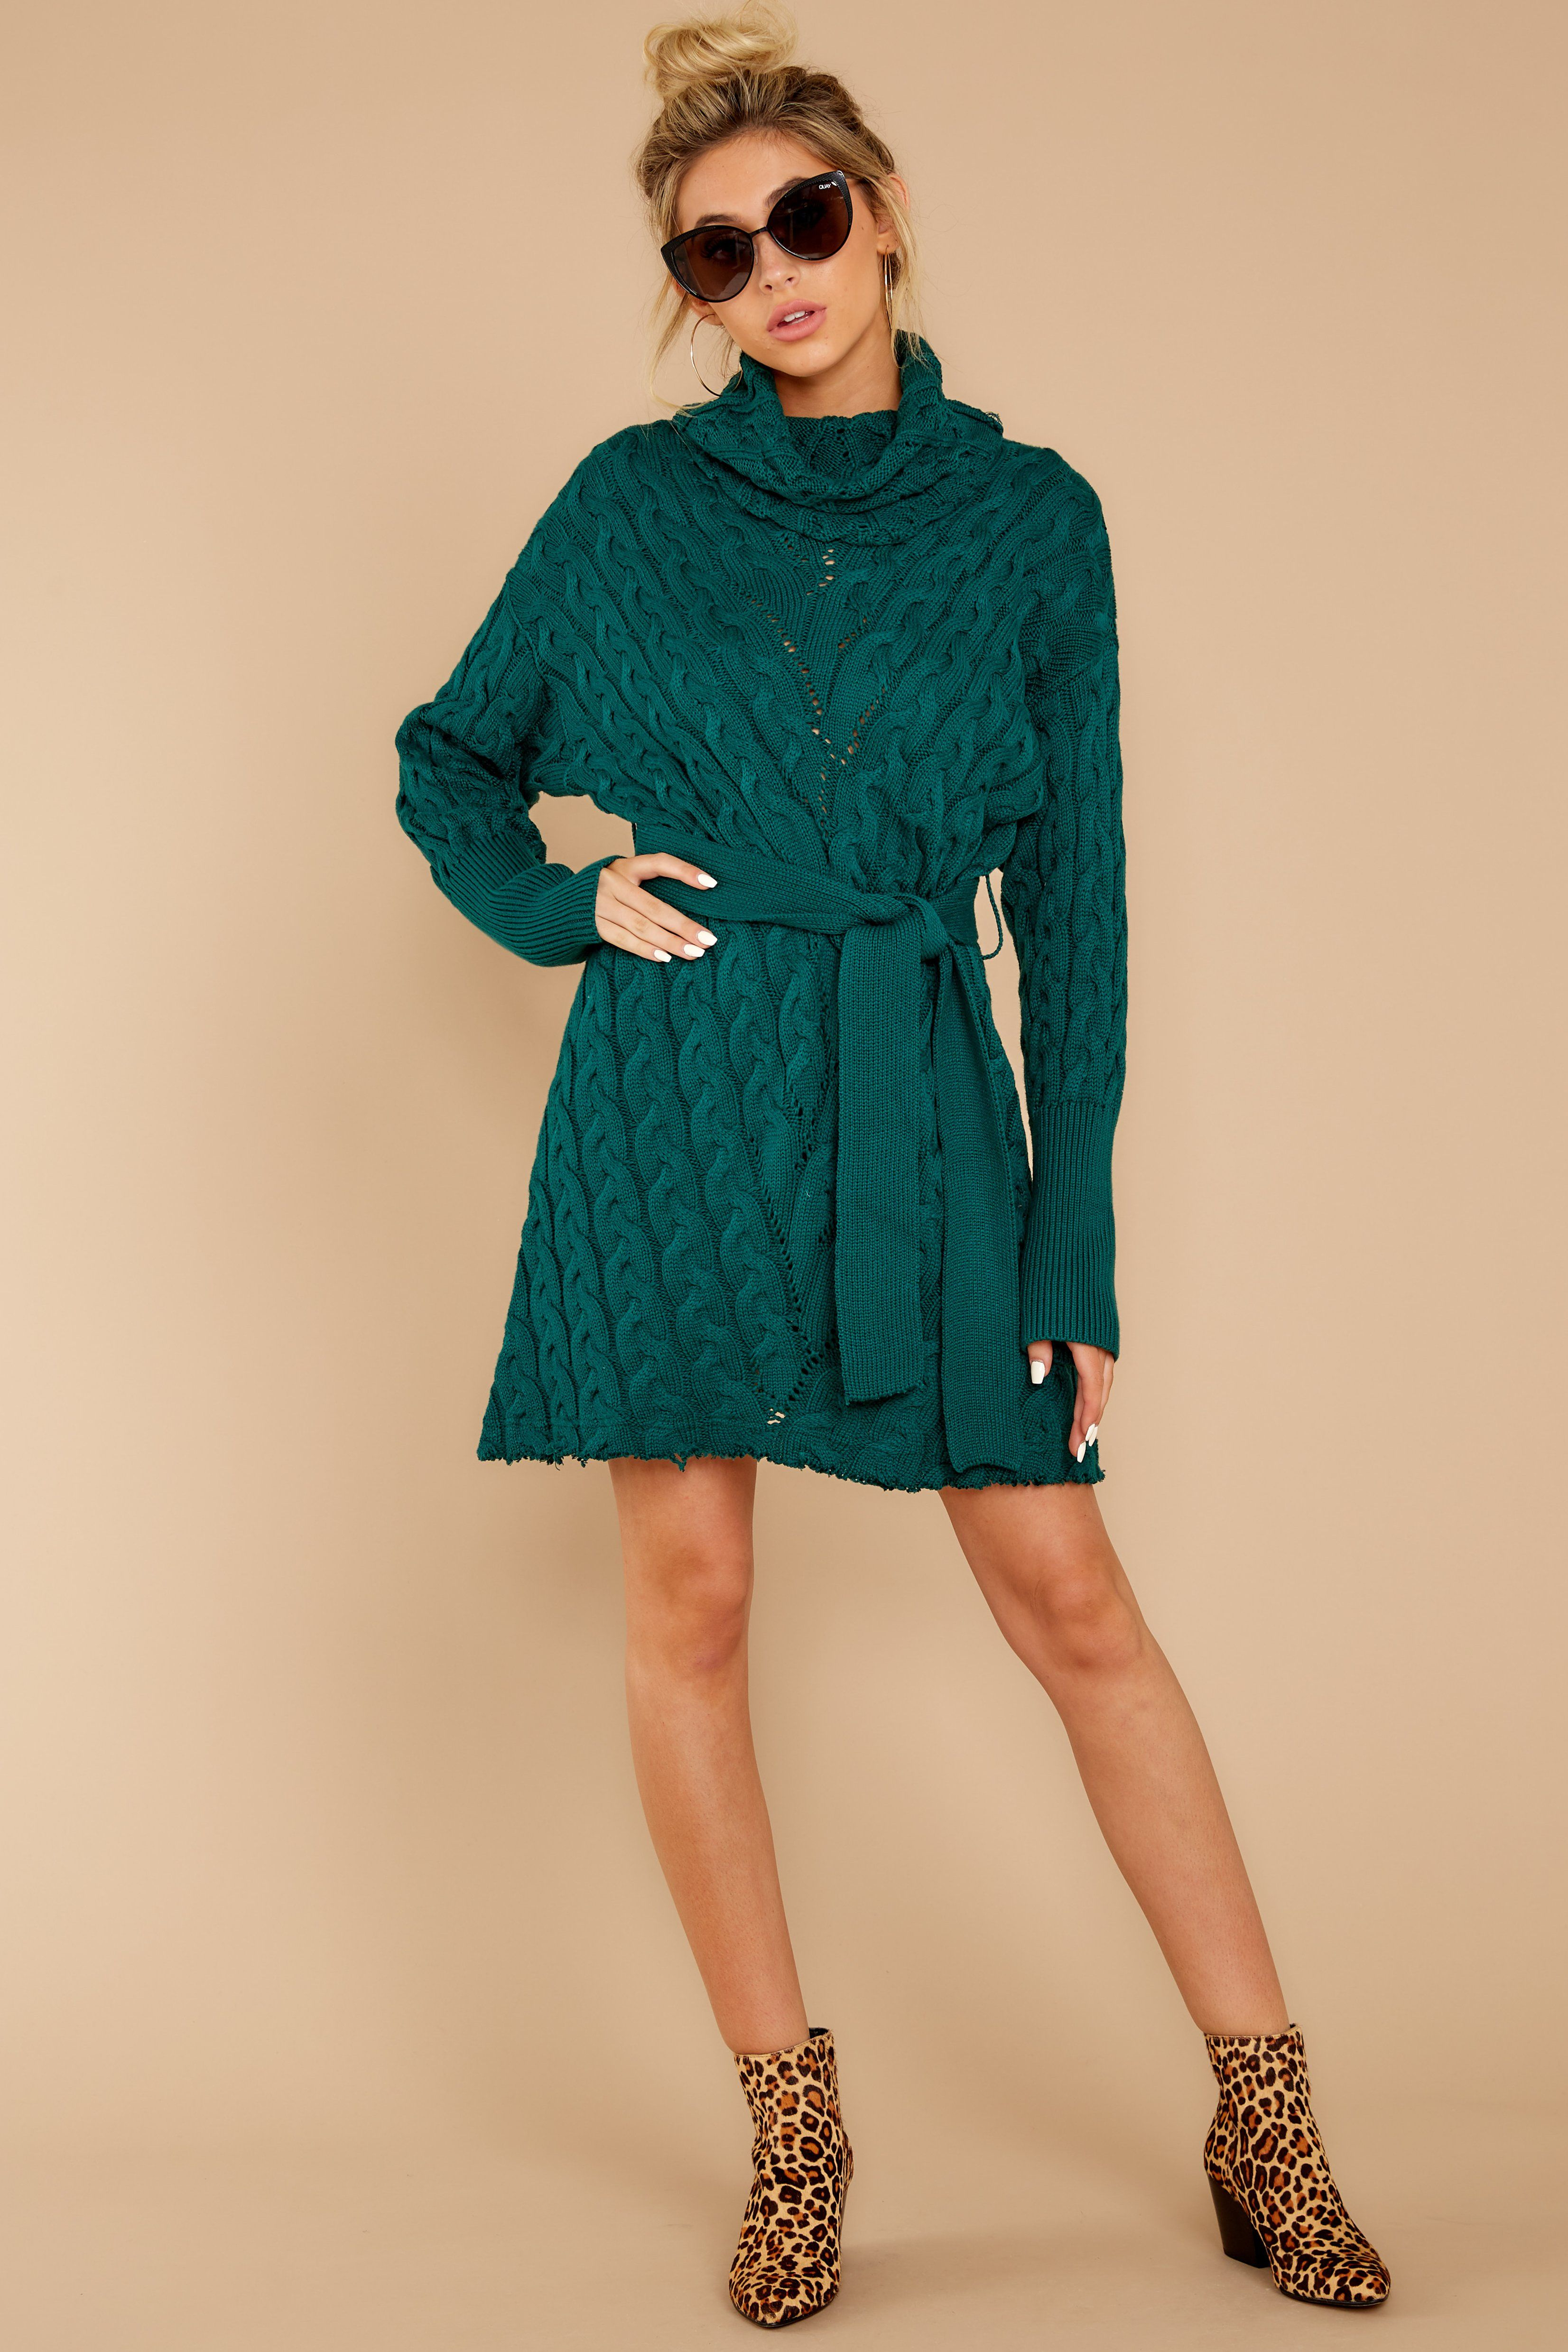 Ready Willing And Cable Knit Teal Green Sweater Dress 11